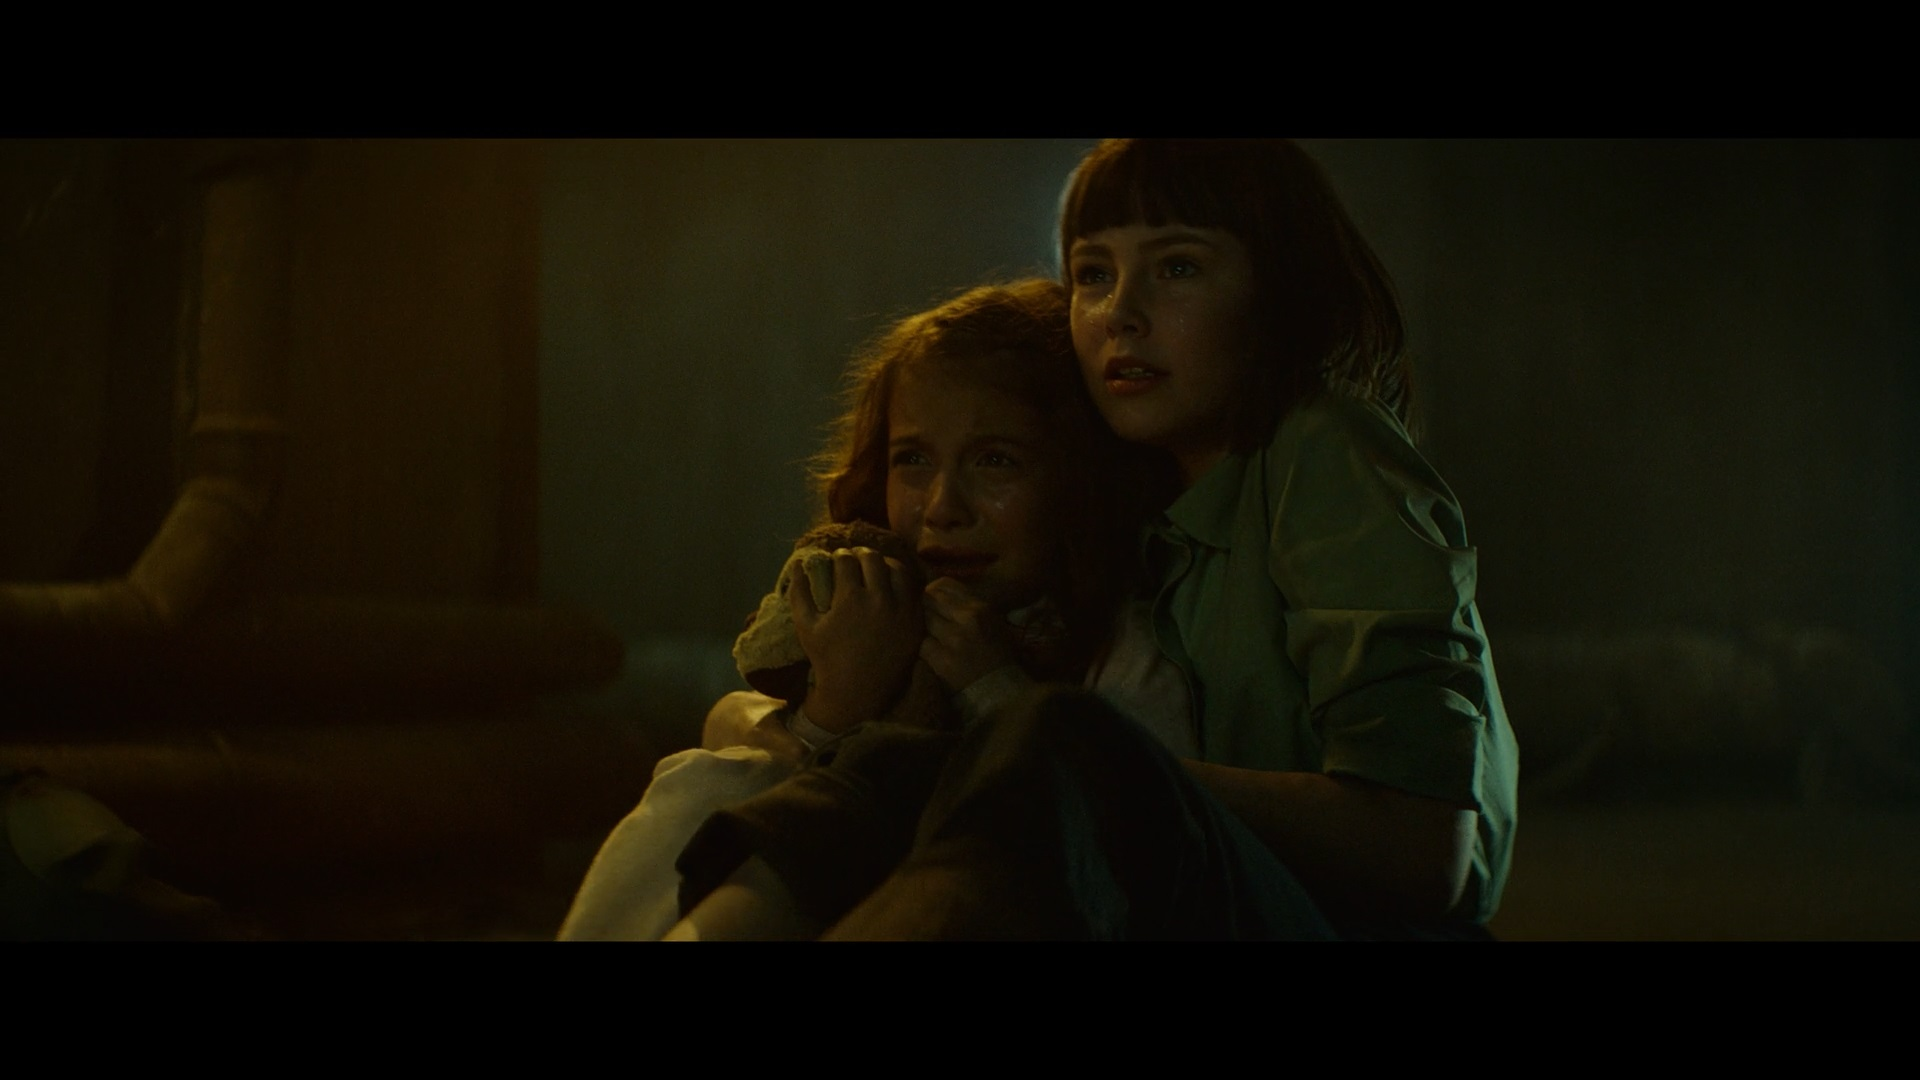 Amelia Crouch and Erica Tremblay in Extinction (2018)